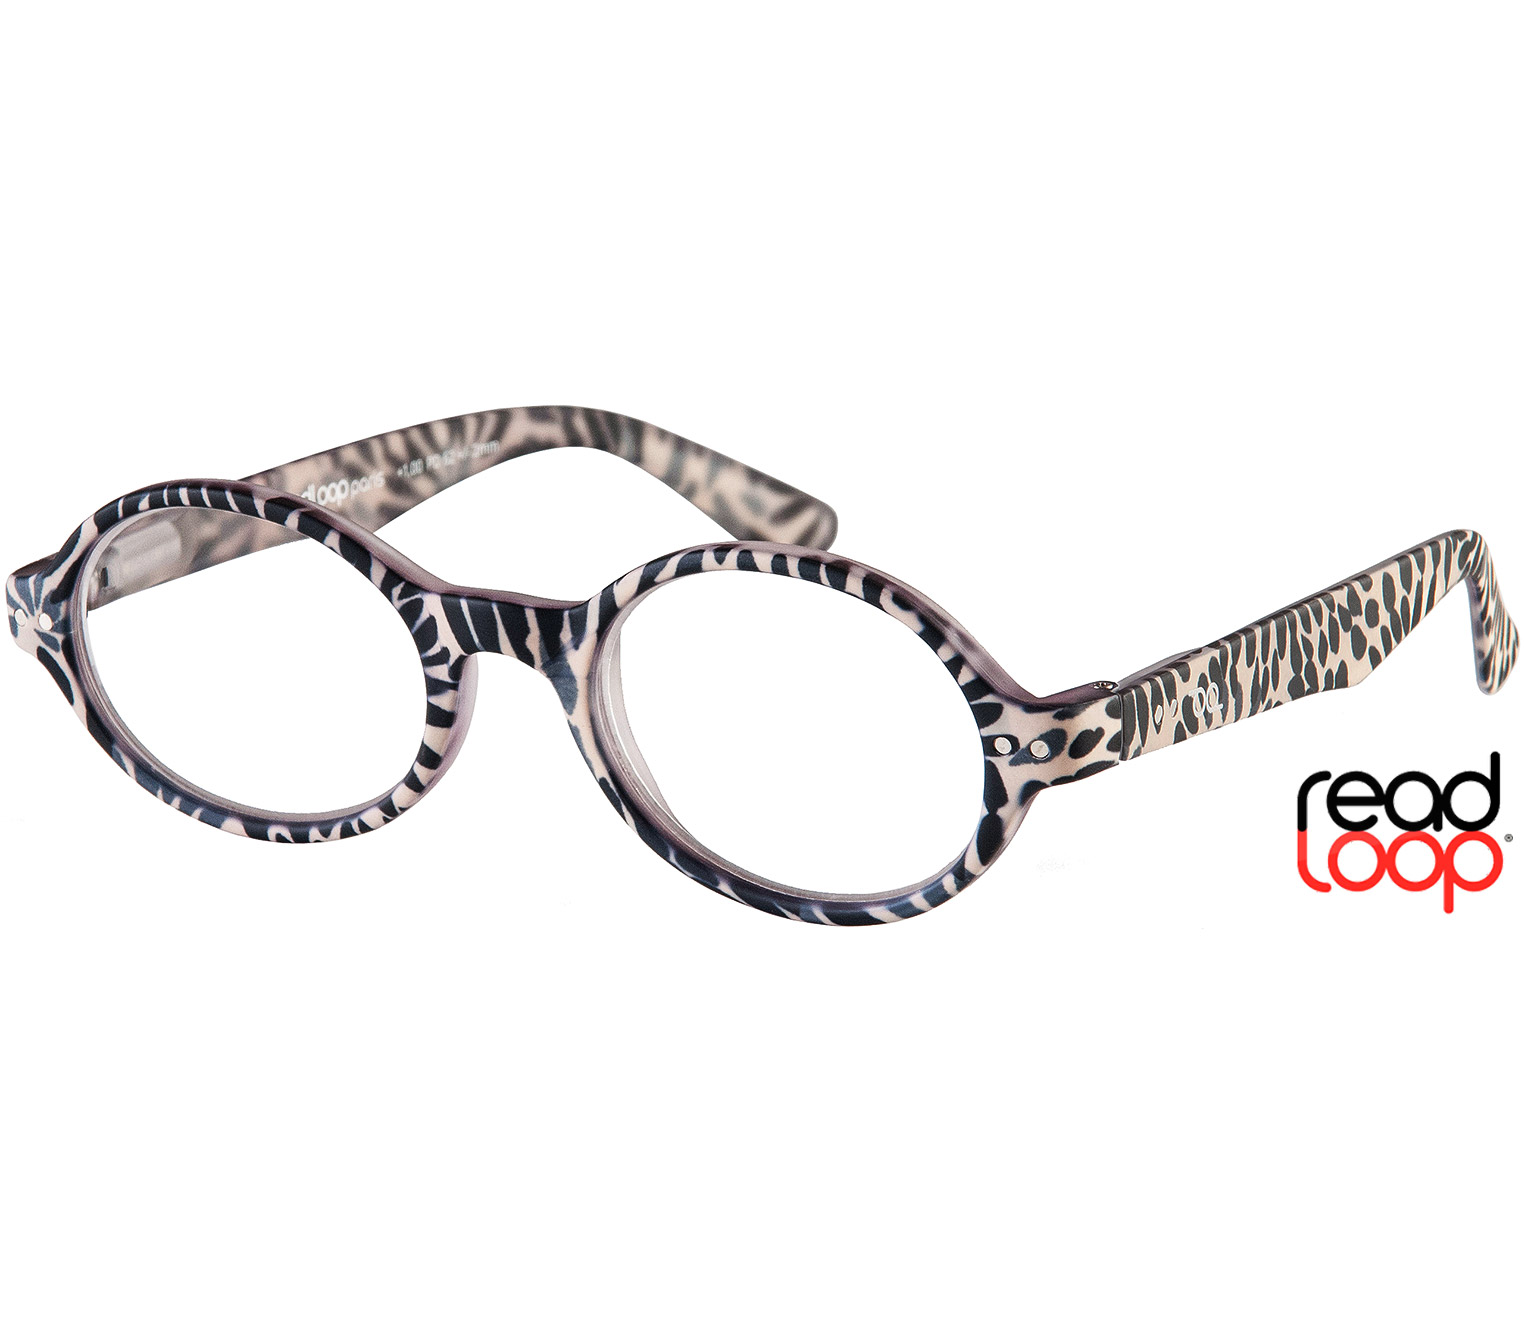 Main Image (Angle) - Wild (Zebra) Retro Reading Glasses